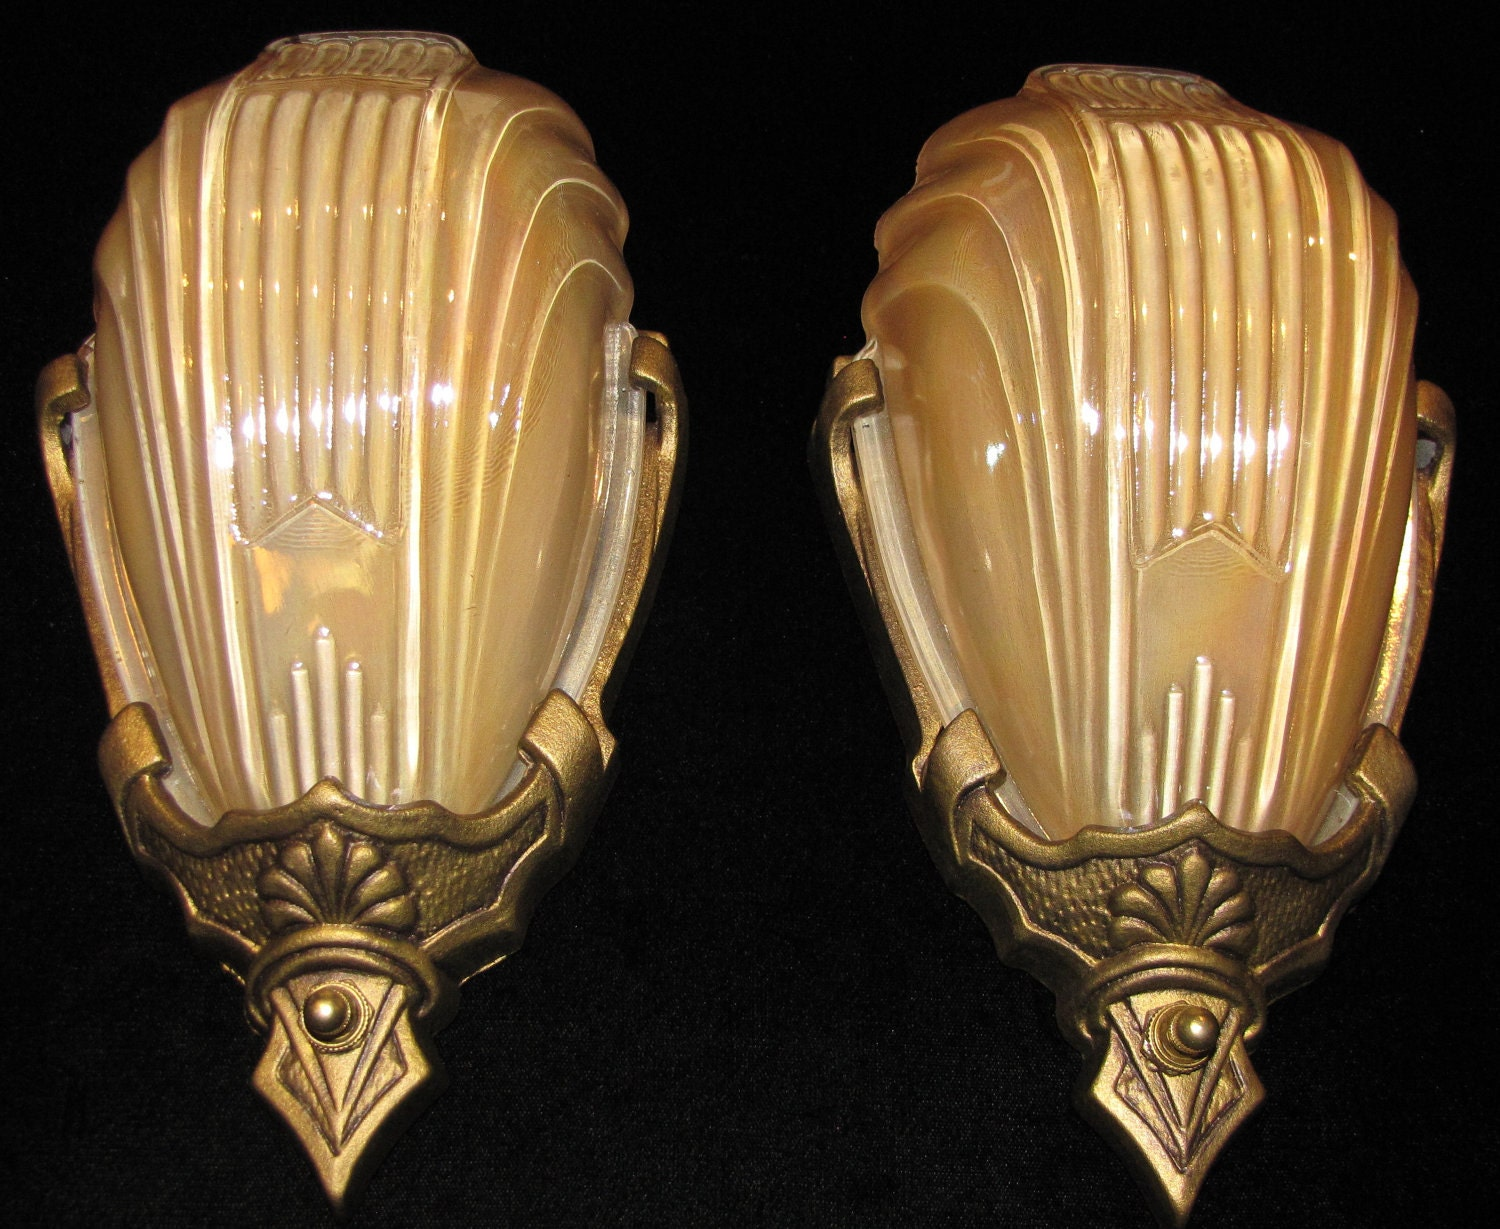 Antique Wall Sconces Art Deco : Vintage Pair of Art Deco Wall Sconces With Slip Shades